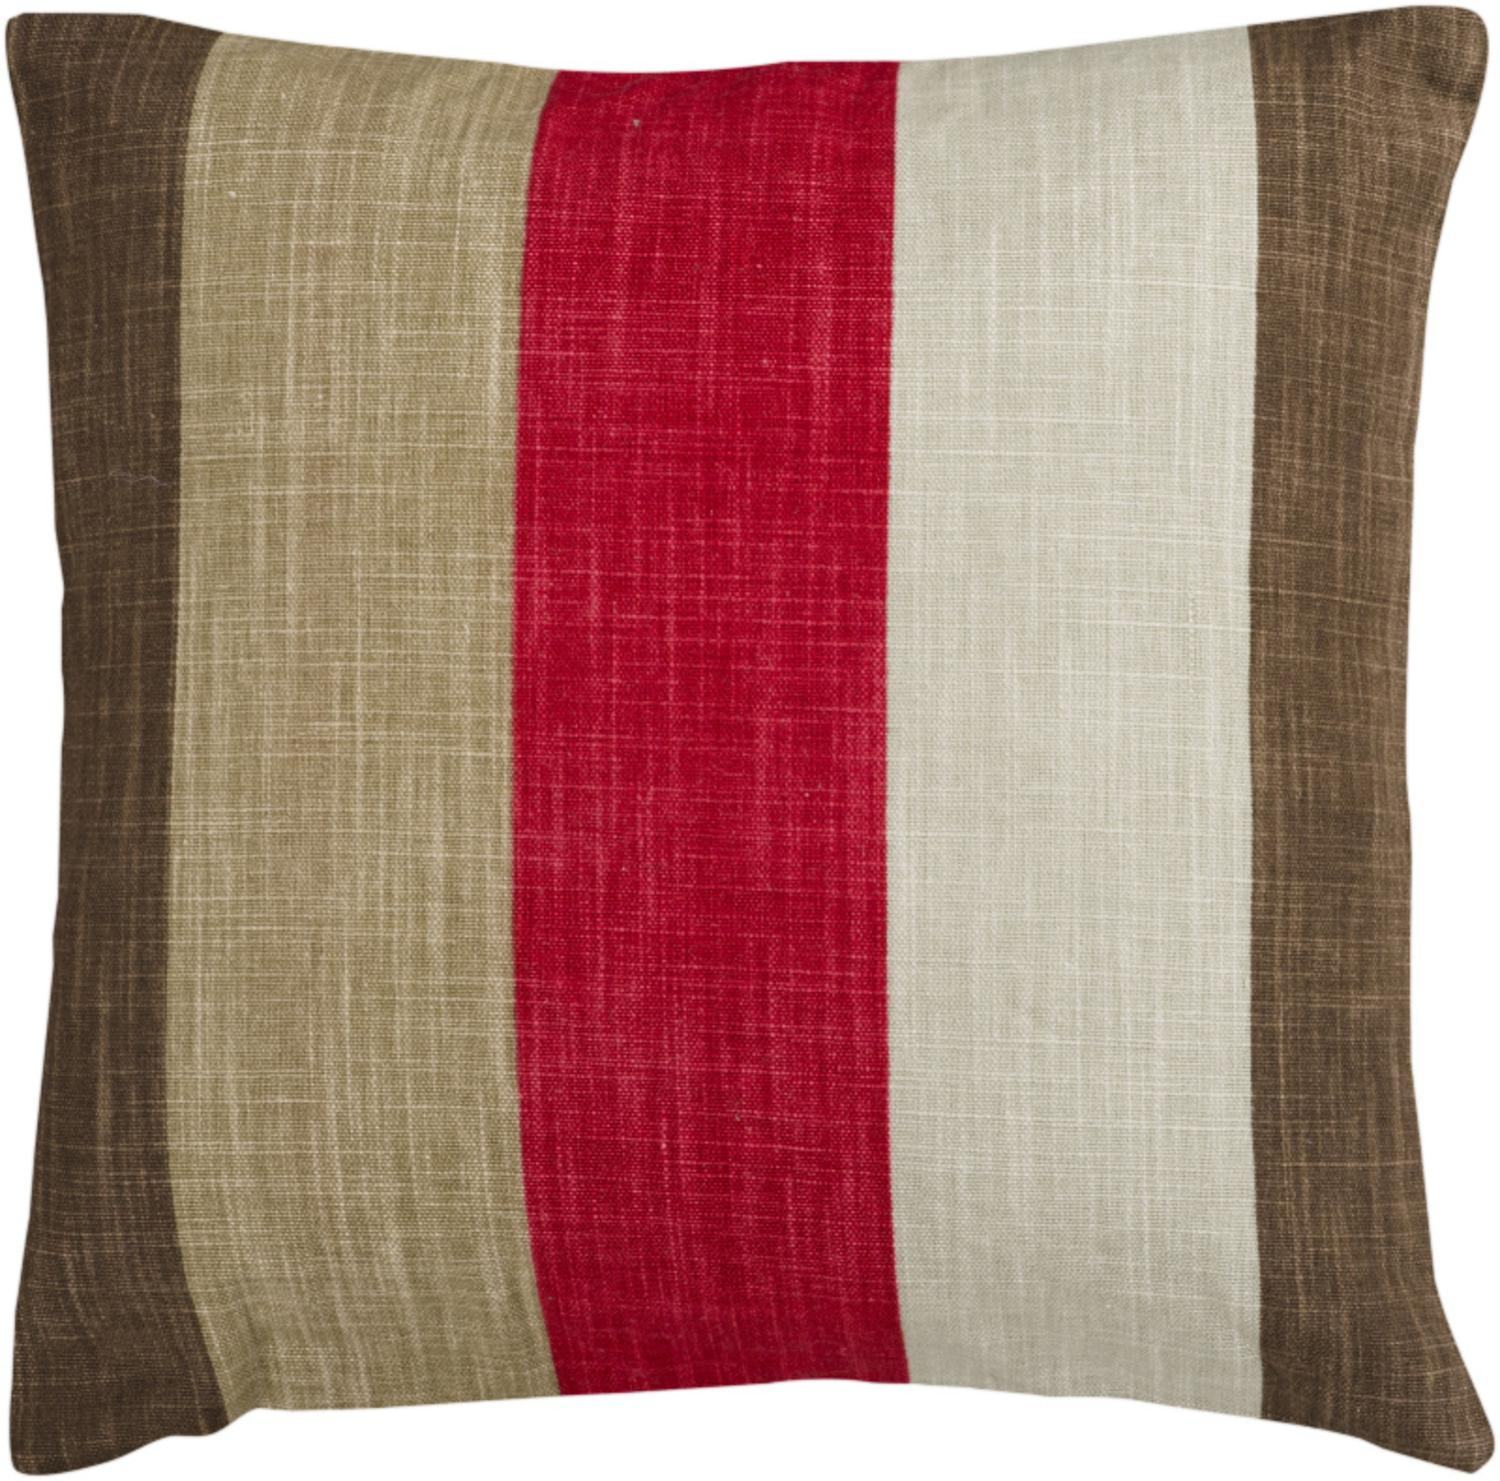 "18"" Red and Brown Thick Striped Decorative Down Throw Pillow"